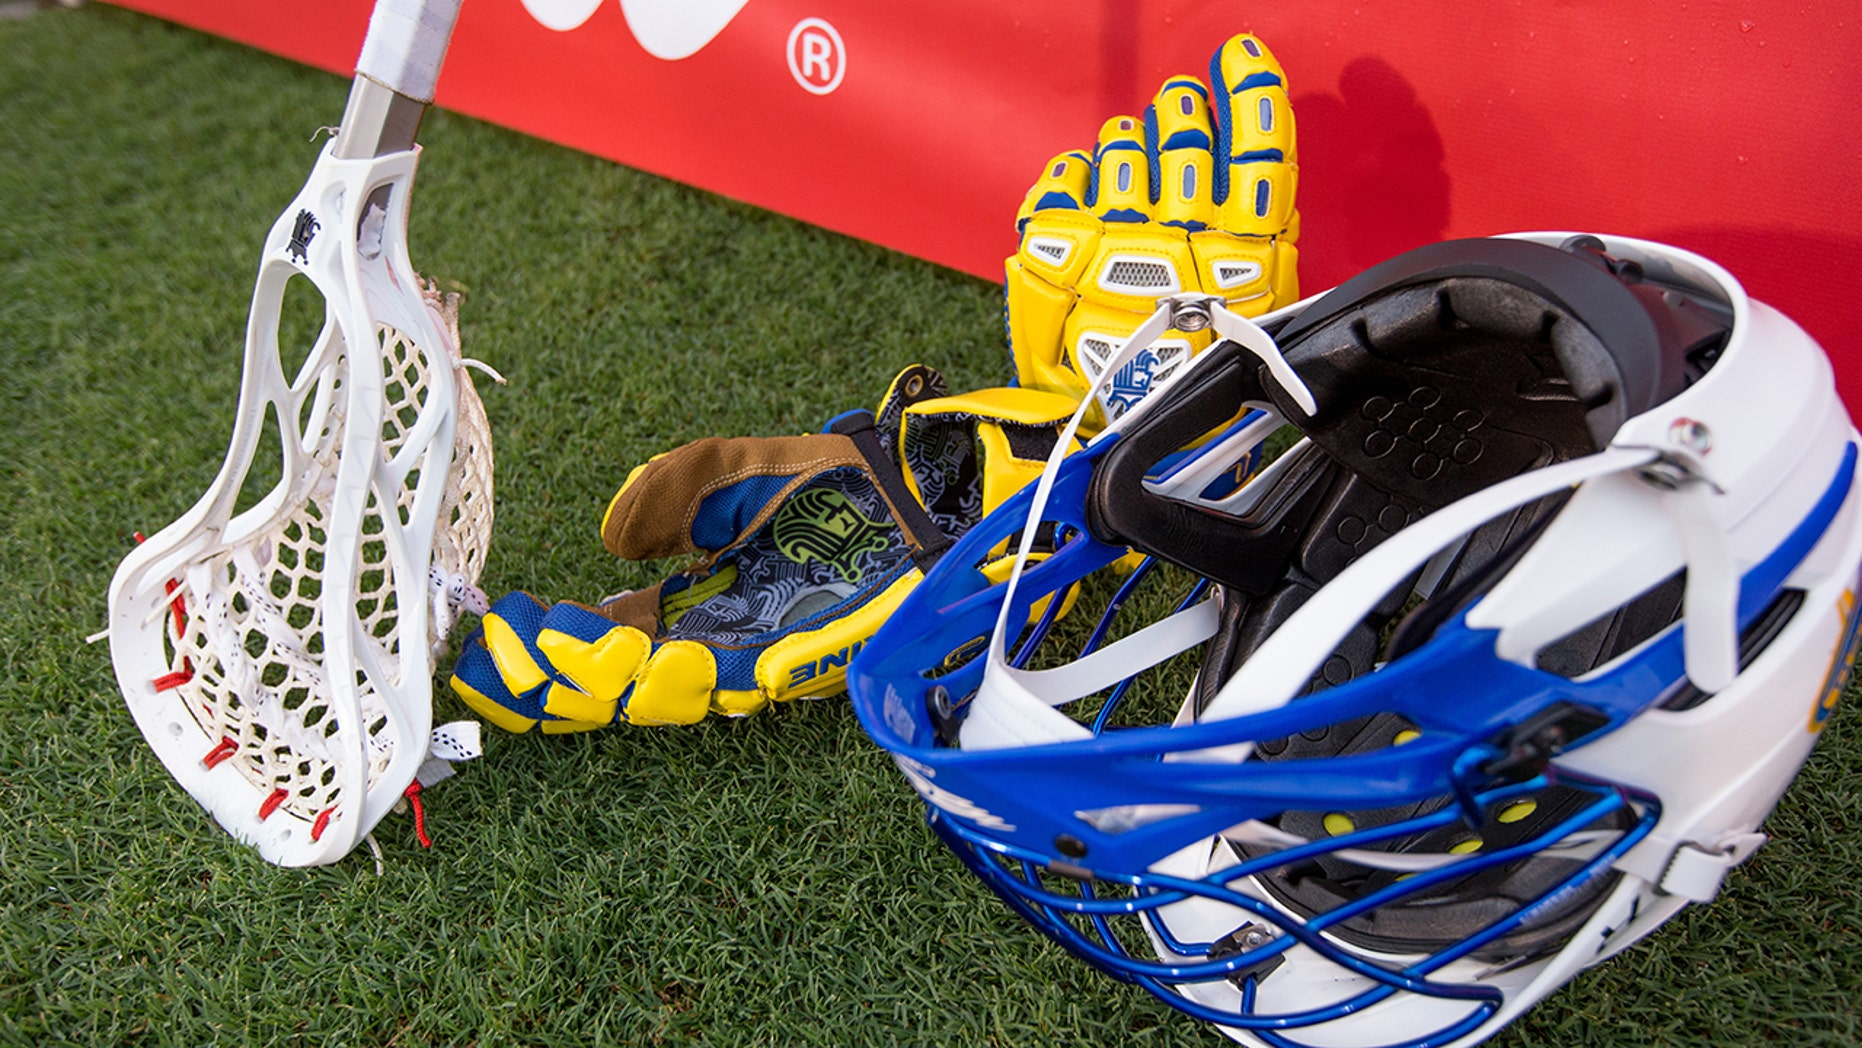 A standout college lacrosse actor is carrying difficulty anticipating a helmet that fits his head.